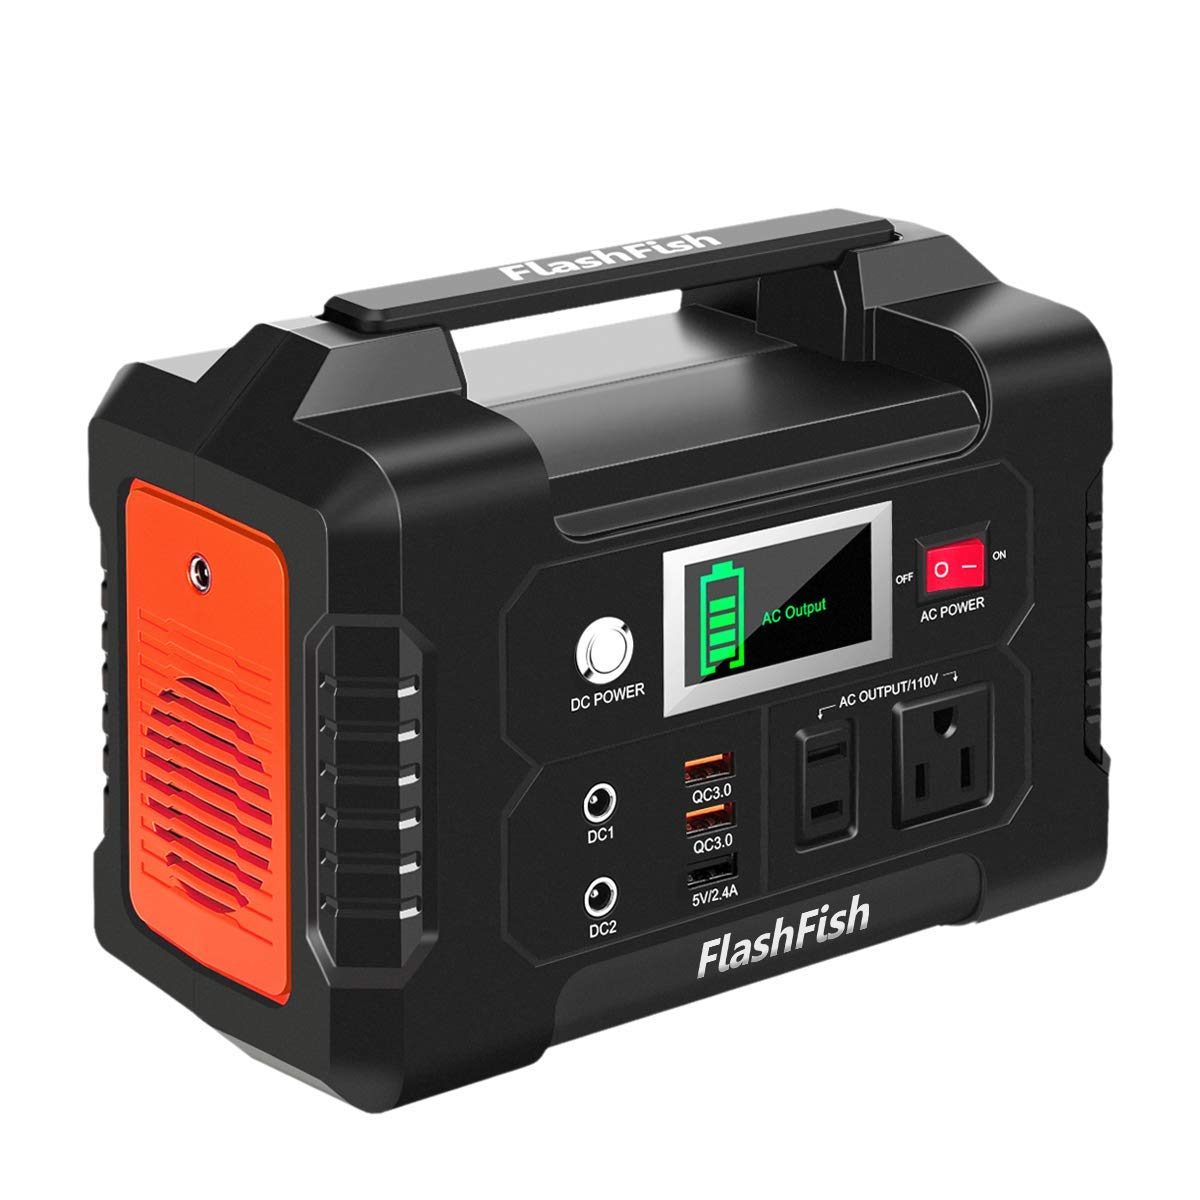 200W Portable Power Station, FlashFish 40800mAh Solar Generator with 110V AC Outlet/2 DC Ports/3 USB Ports, Battery Power Supply for CPAP Outdoor Adventure Load Trip Camping Emergency. by FF FLASHFISH